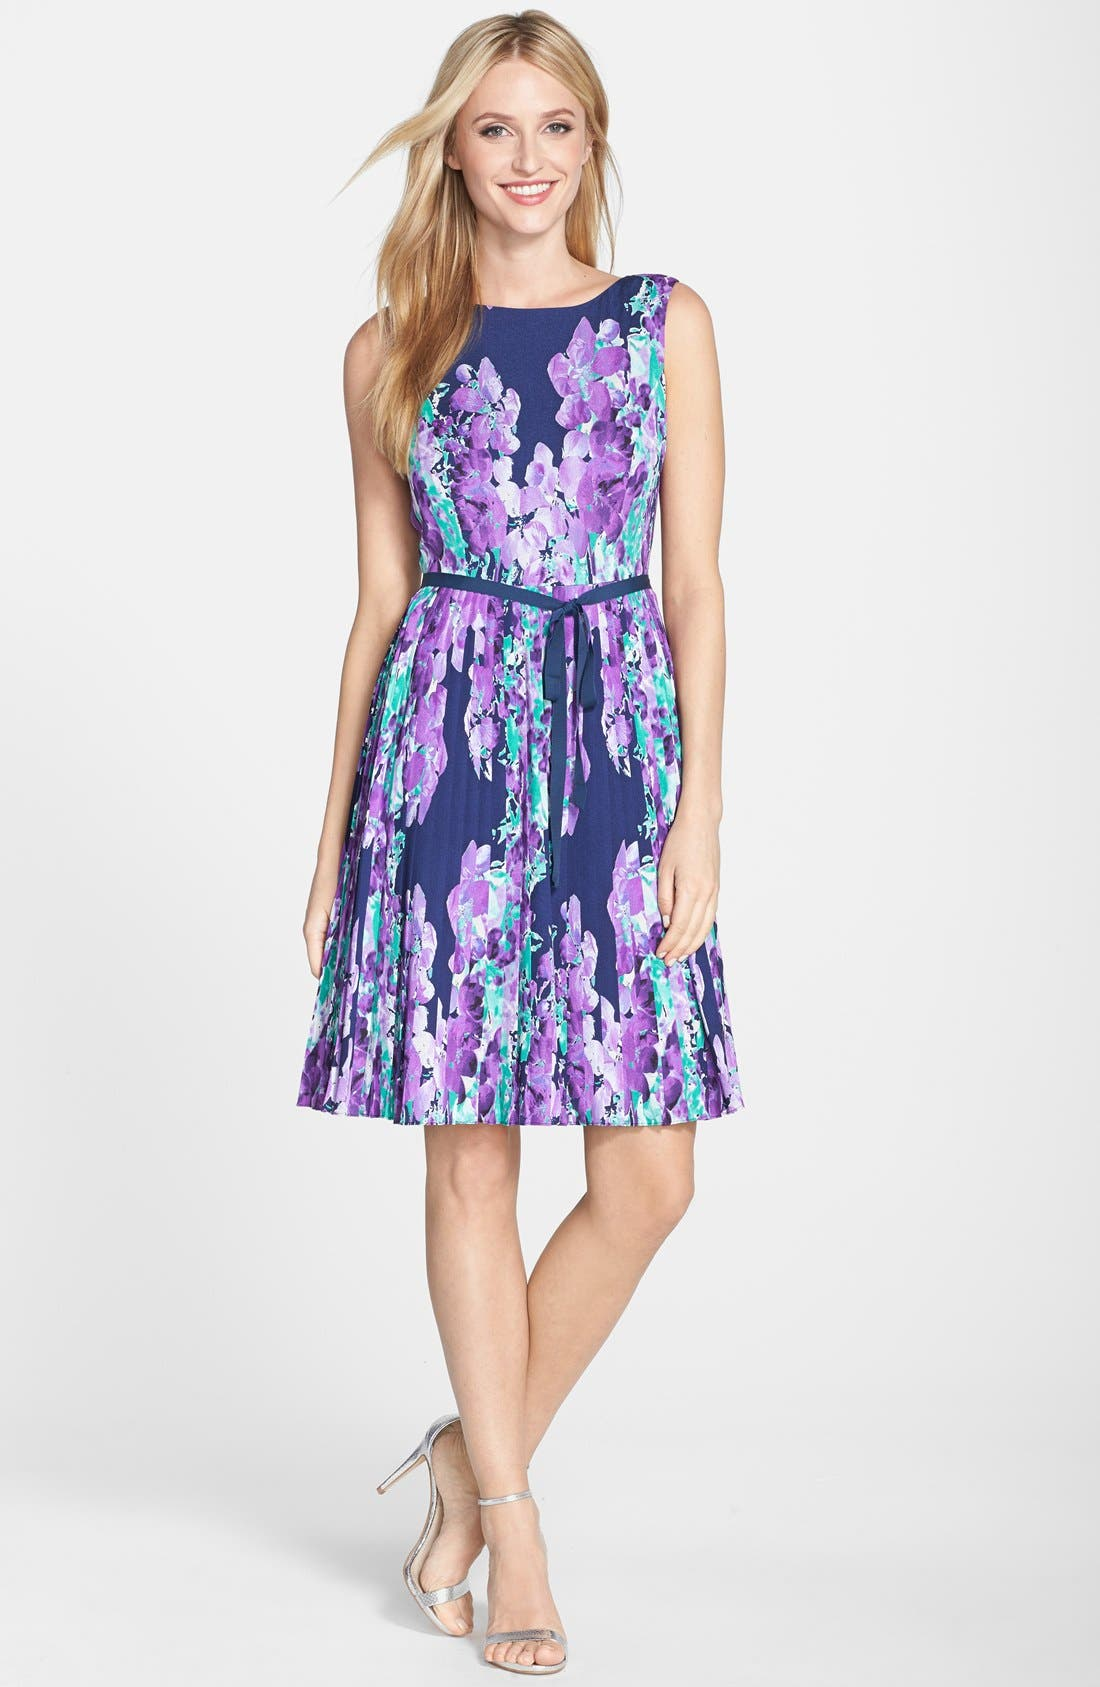 ADRIANNA PAPELL,                             Floral Print Pleat Fit & Flare Dress,                             Alternate thumbnail 3, color,                             468